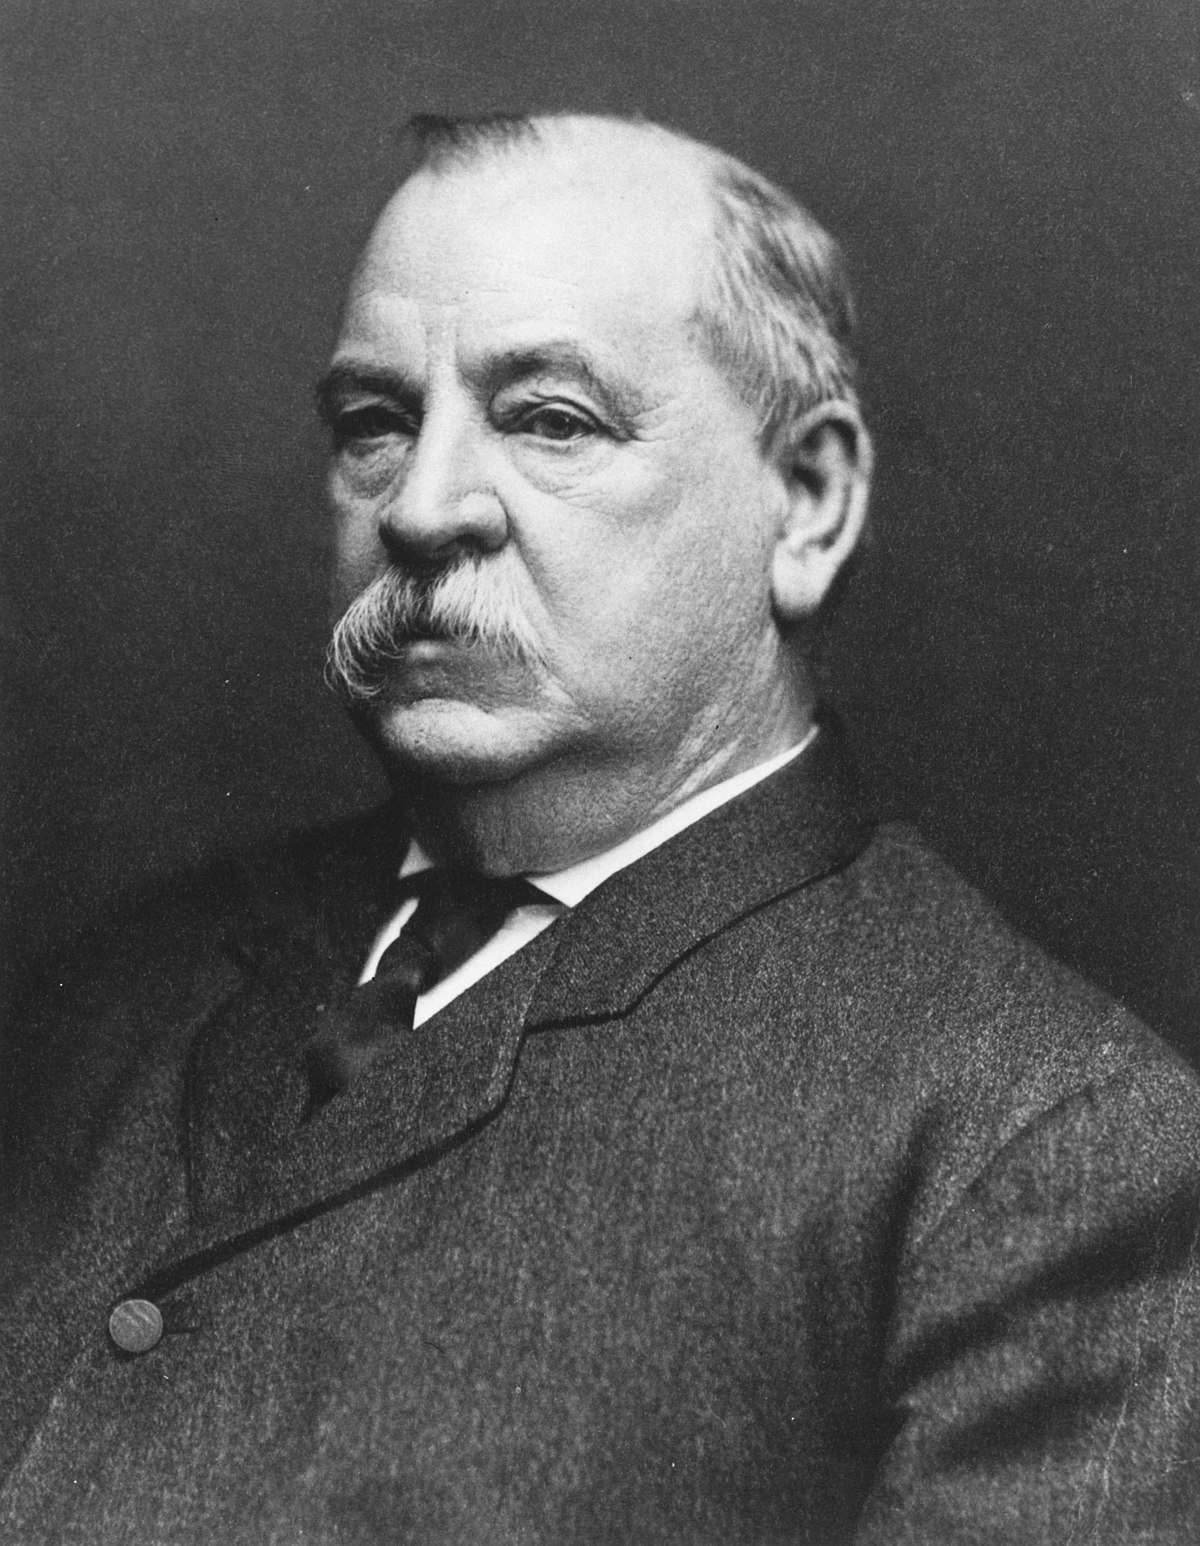 1200px Grover Cleveland NARA 518139 cropped